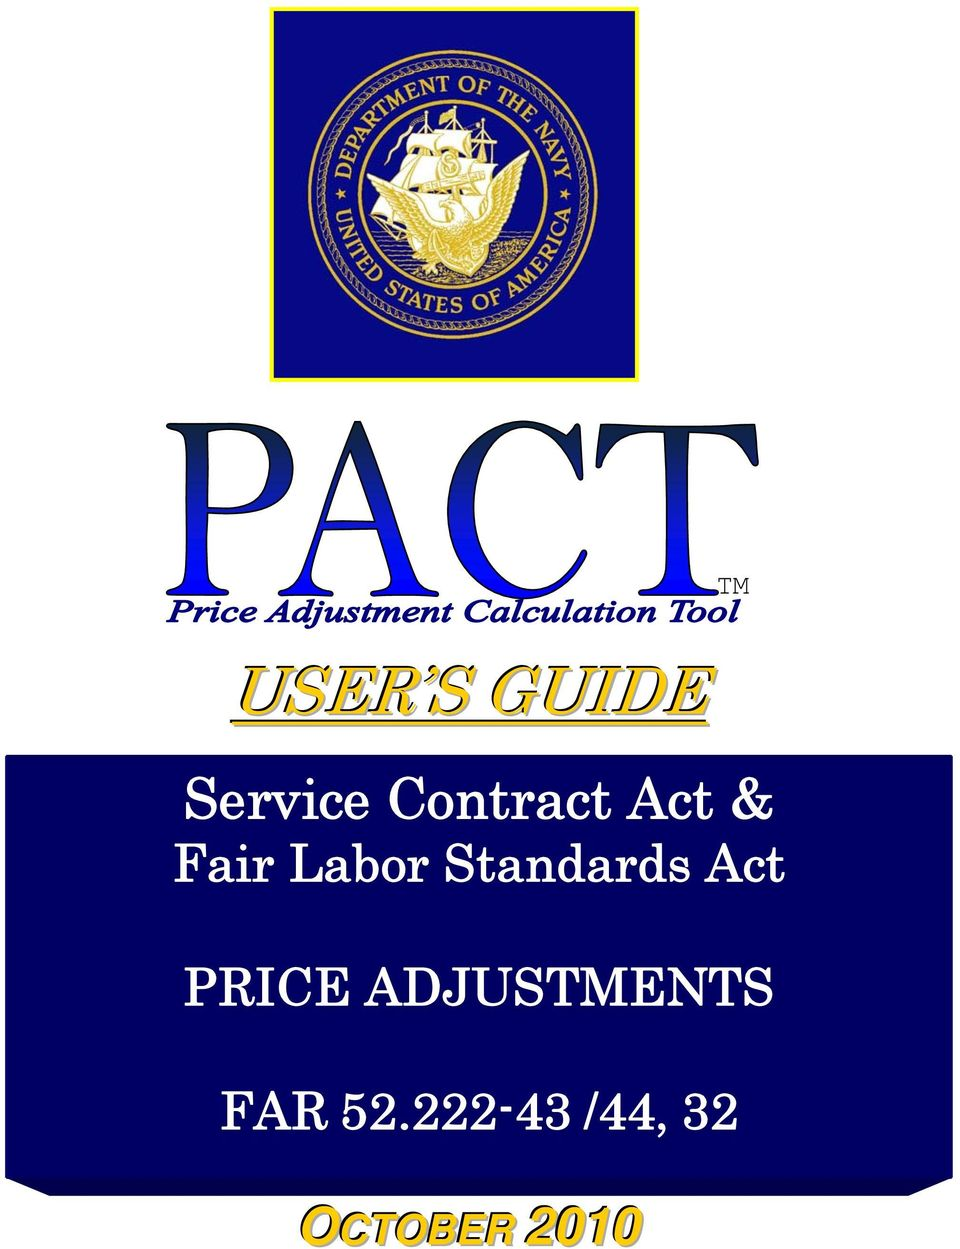 Standards Act PRICE ADJUSTMENTS